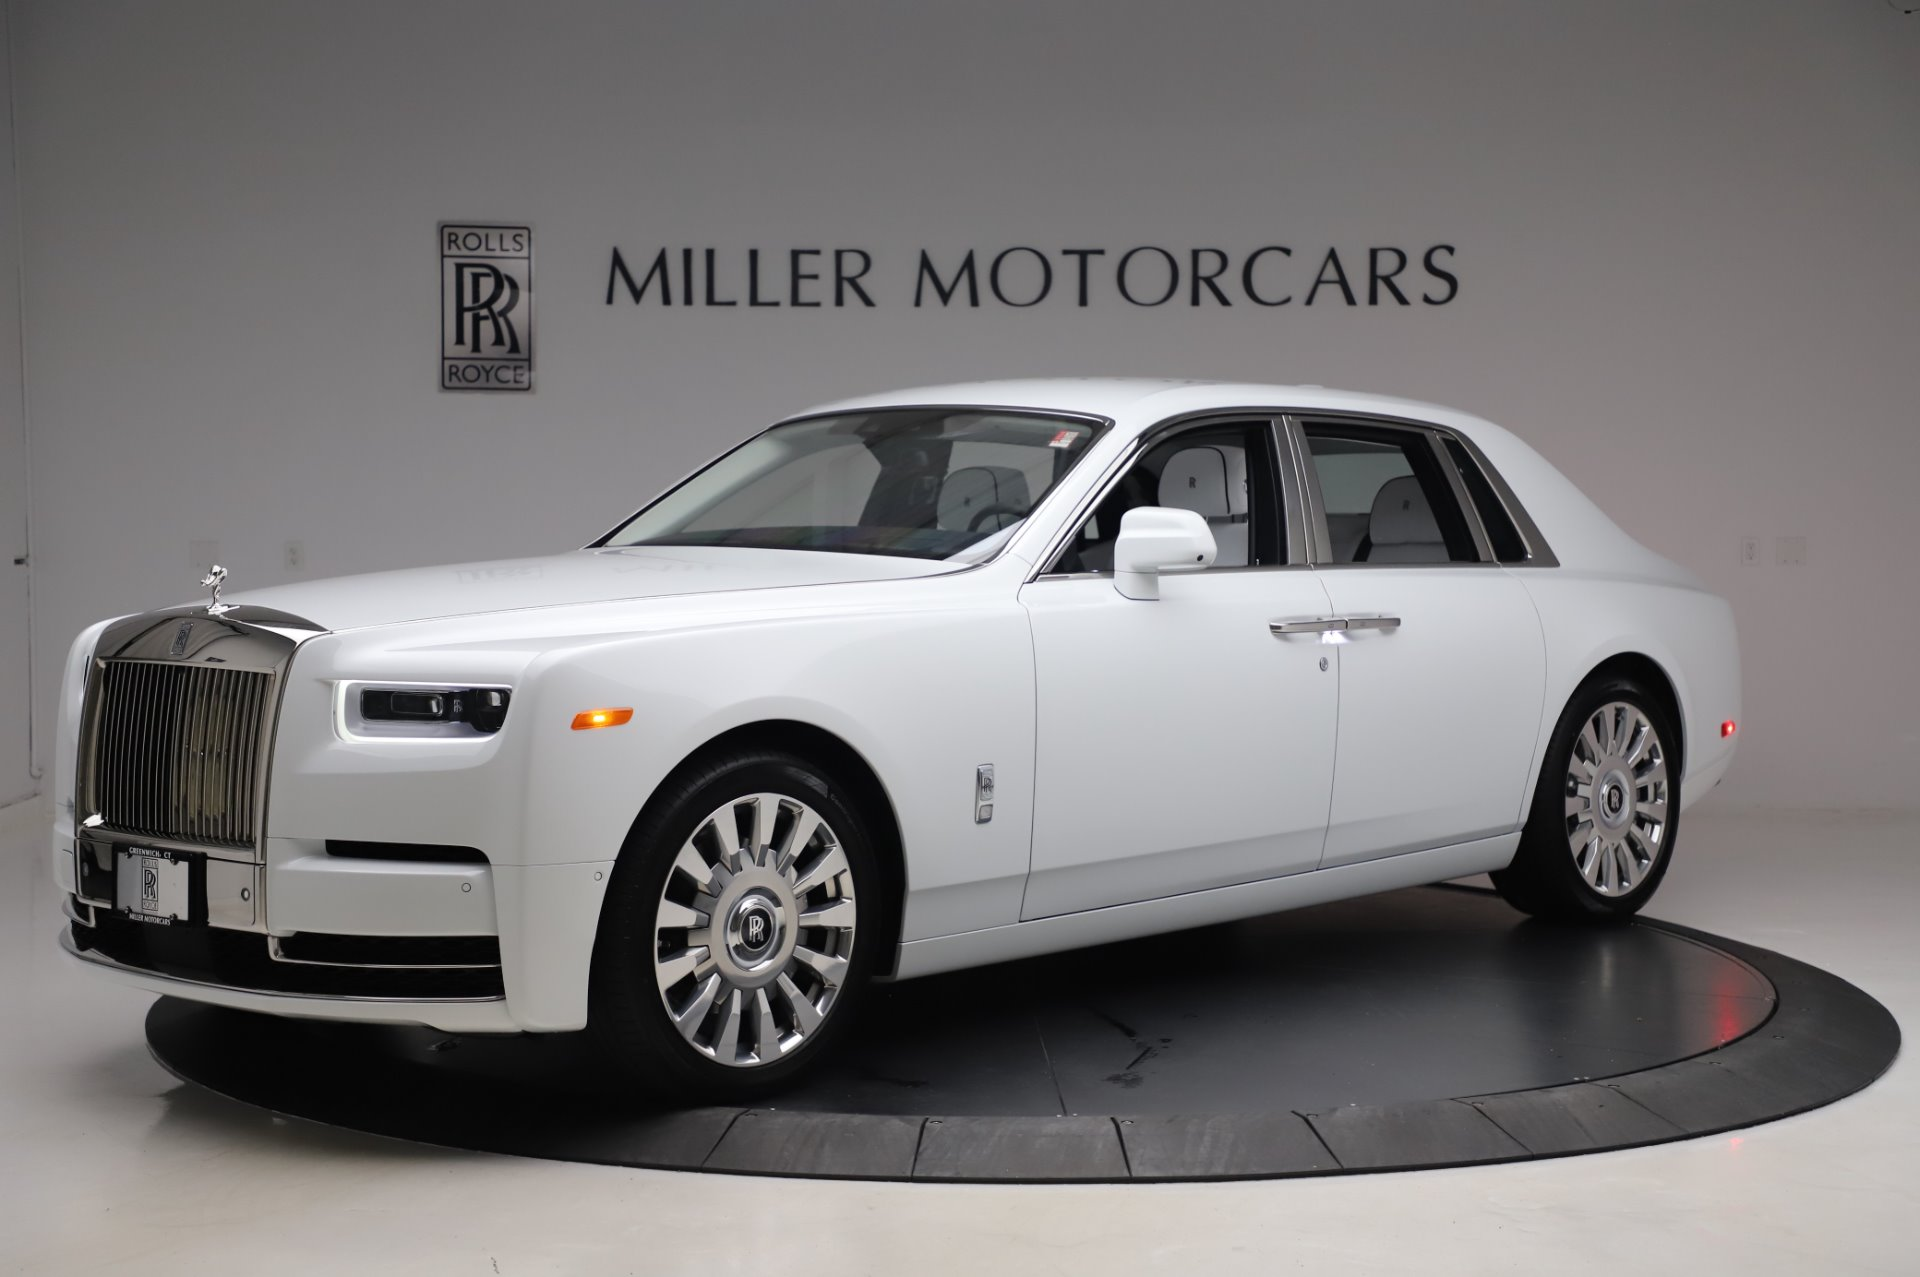 New 2020 Rolls-Royce Phantom for sale $545,200 at Bugatti of Greenwich in Greenwich CT 06830 1